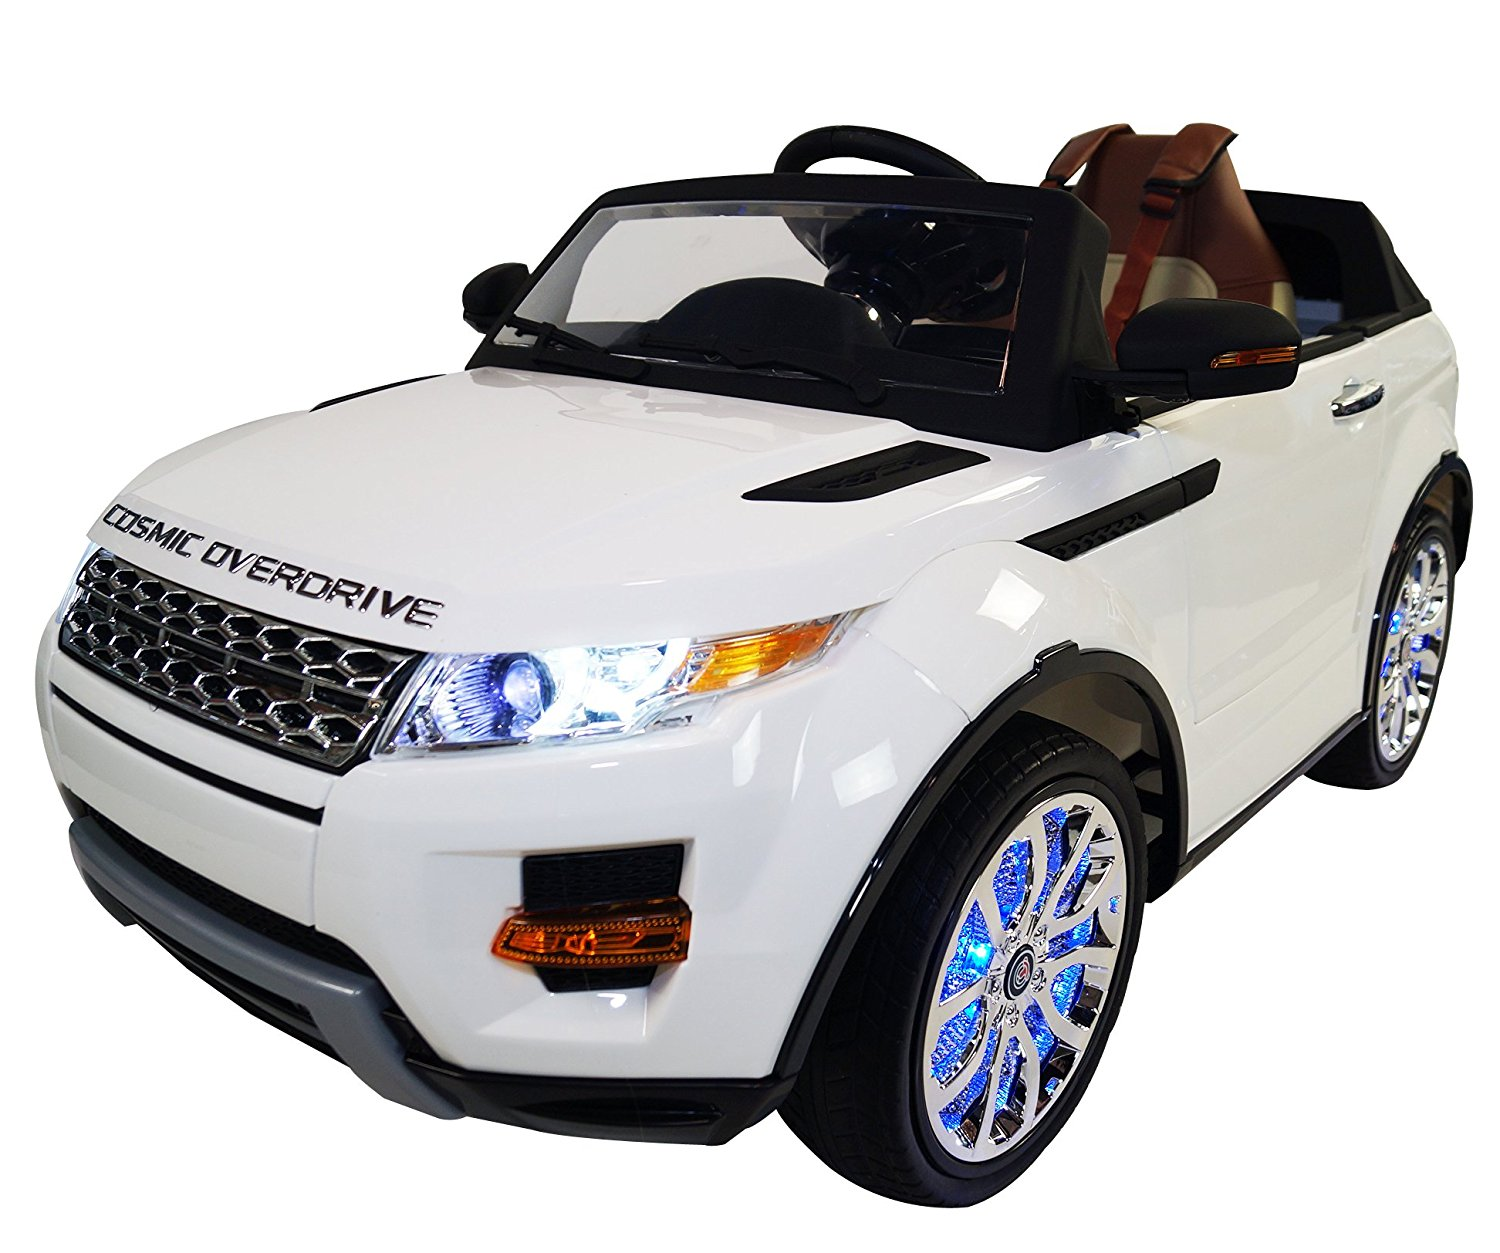 9a7714763295 Range Rover Style Premium Ride On Electric Toy Car For Kids - 12V Battery  Powered -